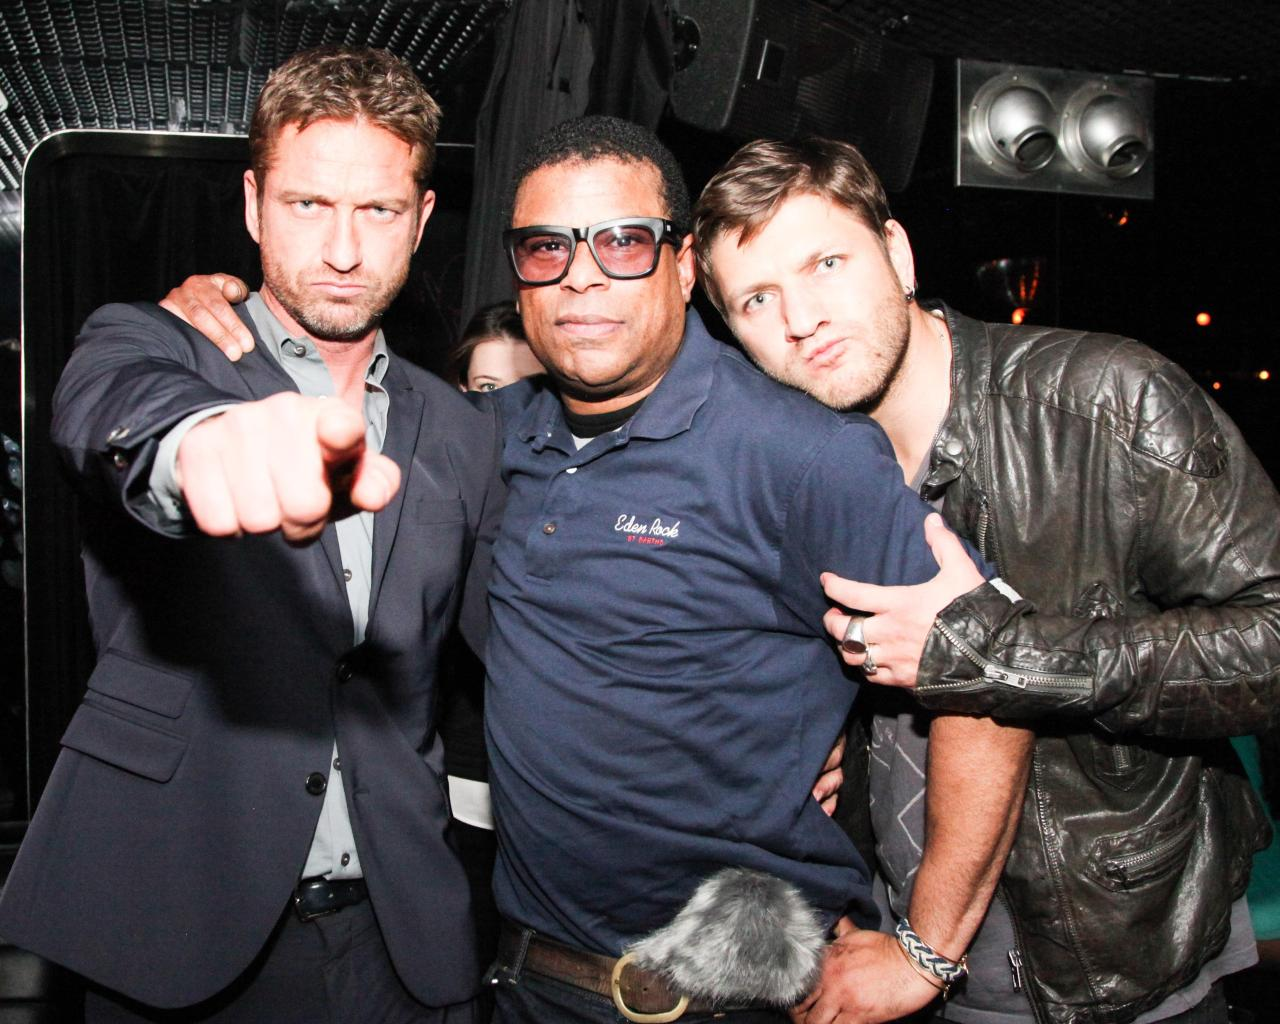 Gerard Butler and friends at the Chez André pop up at mmhmmm in The Standard, Hollywood